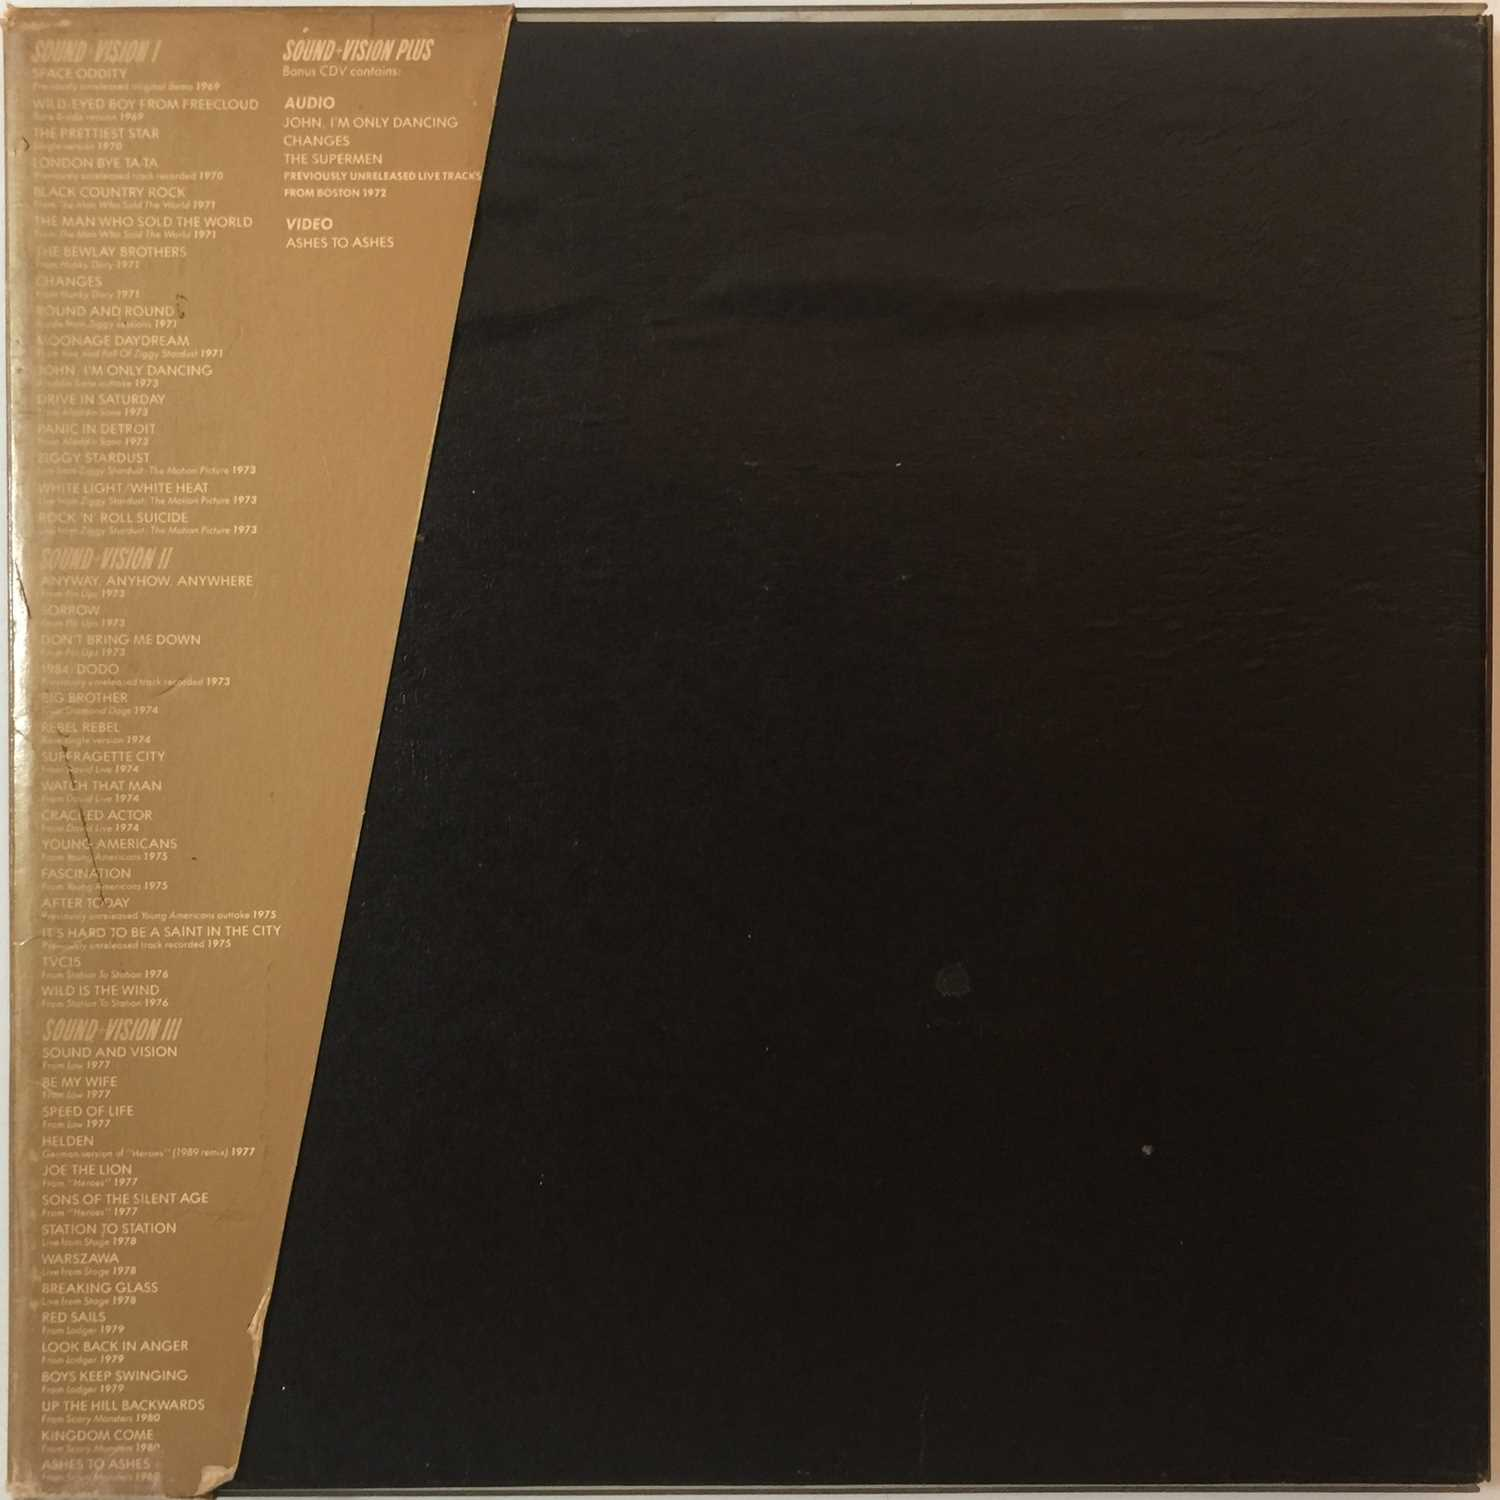 DAVID BOWIE - LIMITED EDITION CD BOX SET RELEASES - Image 6 of 8